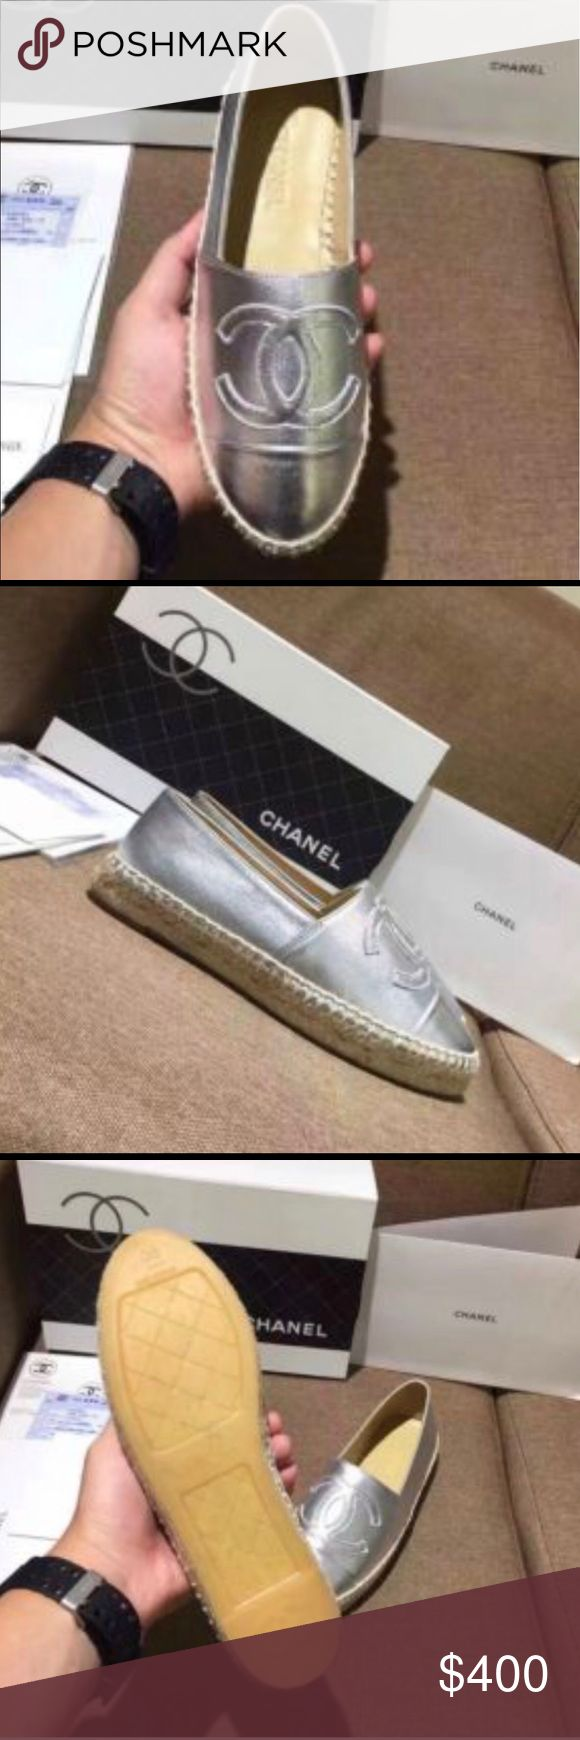 Metallics Chanel espadrilles🎀🎀💙 💙TAKING OFFERS! Arriving in 2 weeks 🌈🎀 give me your size and o can order gold ones as well🌕 price reflects authenticity ☀️ CHANEL Shoes Espadrilles